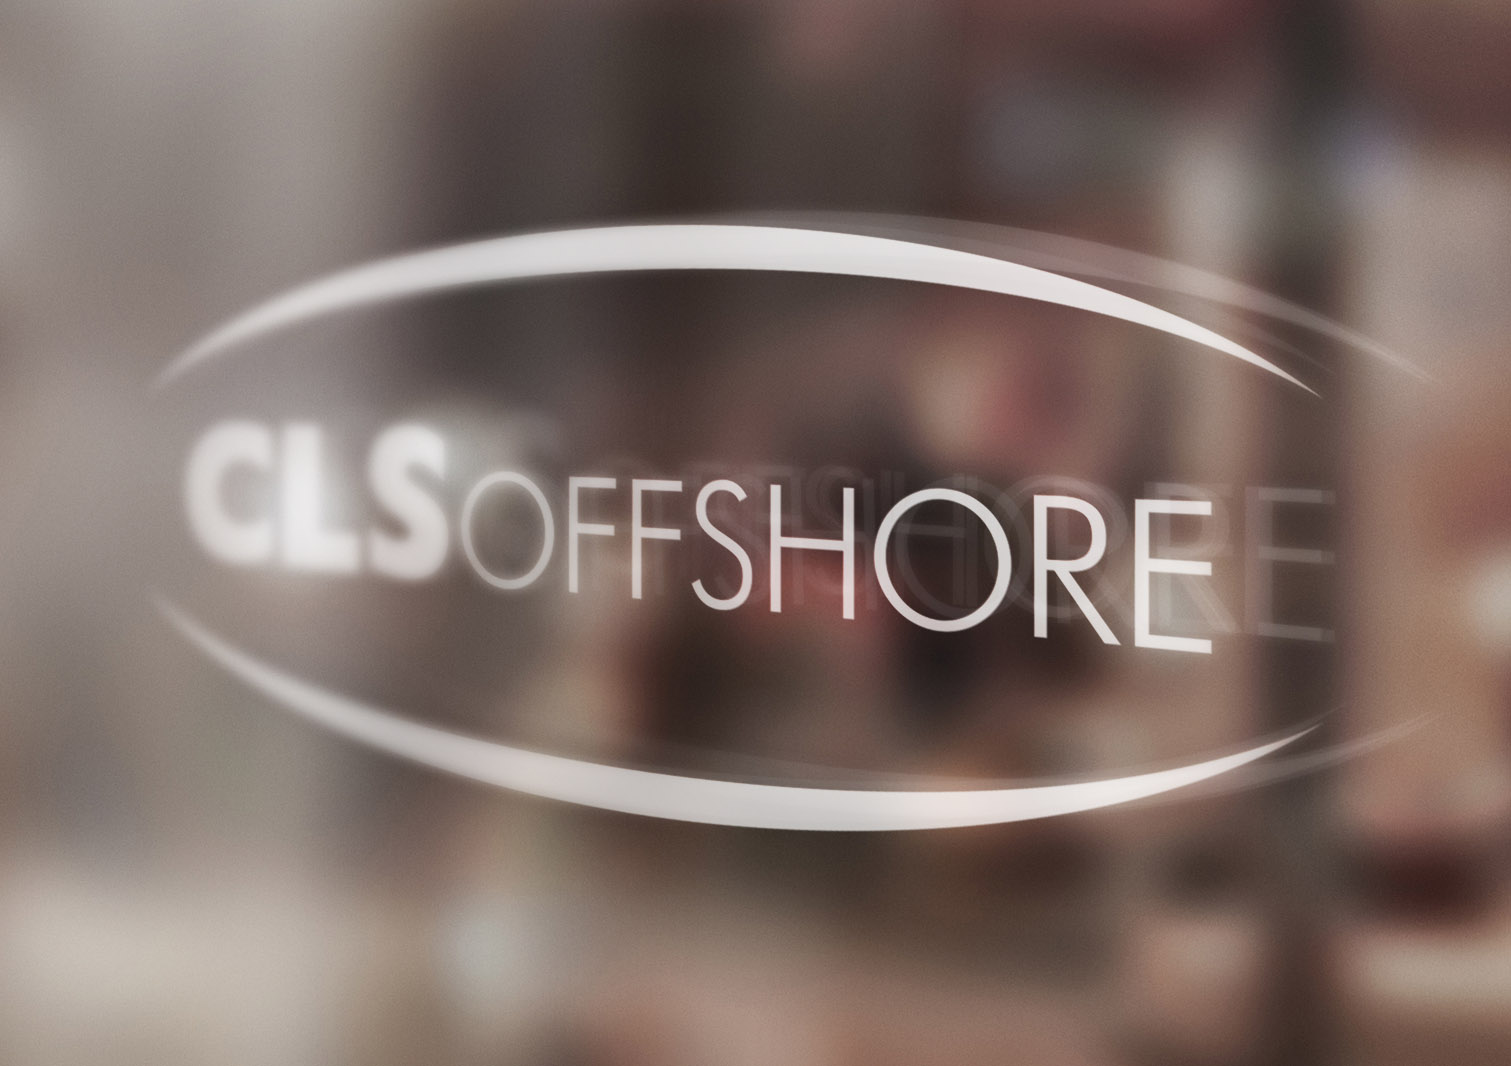 CLS Offshore Limited Logo